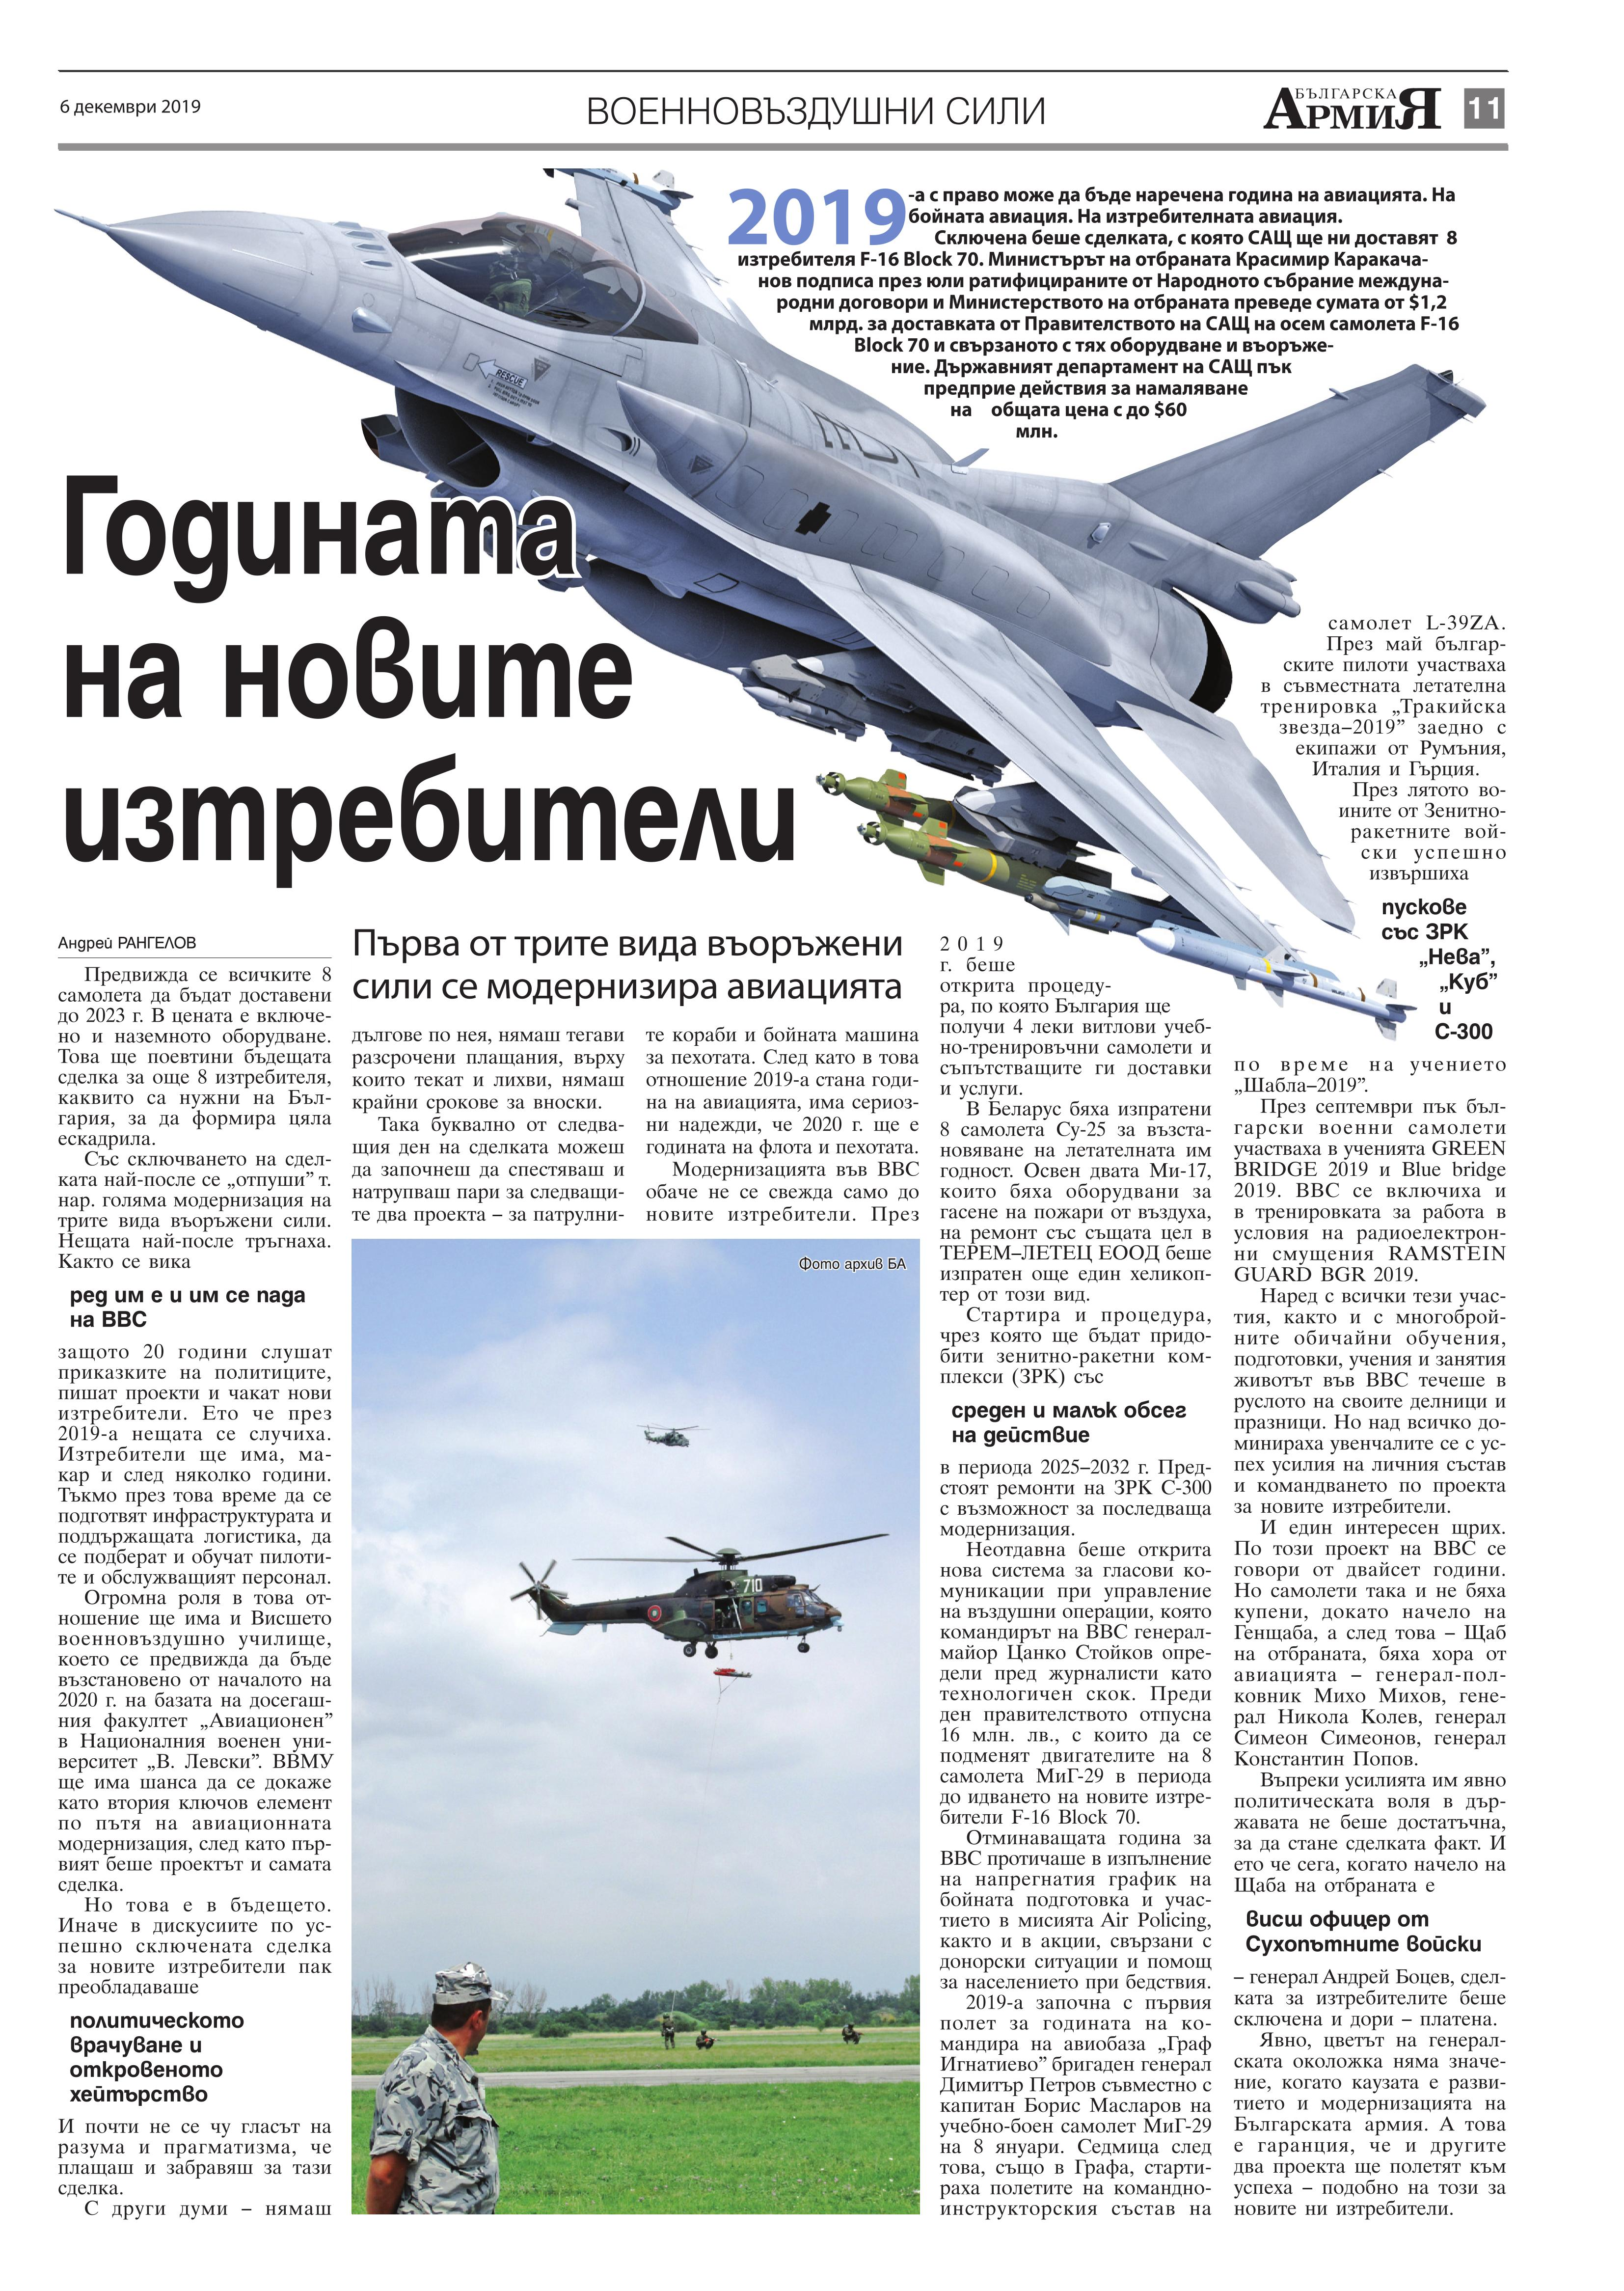 https://www.armymedia.bg/wp-content/uploads/2015/06/11.page1_-118.jpg